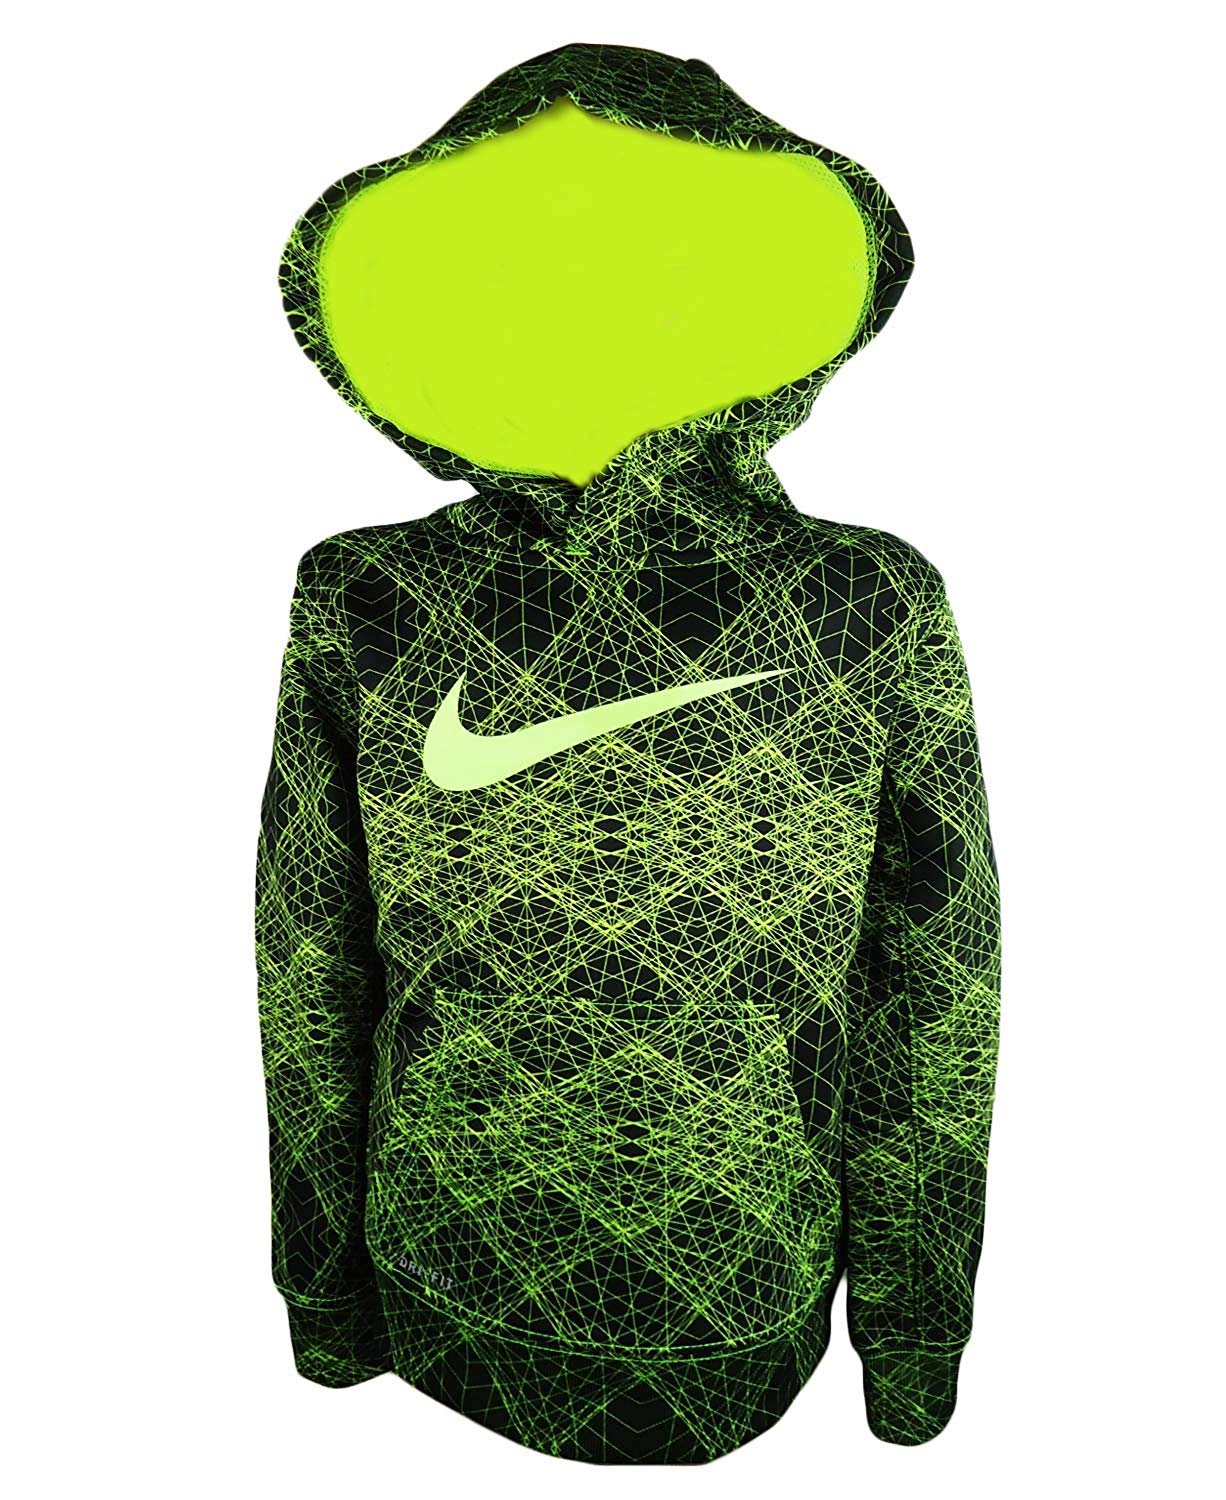 e7183e4e73 Boy: Nike Therma Dri-fit Hoody Jacket - Baby Clothes, Baby Clothing ...